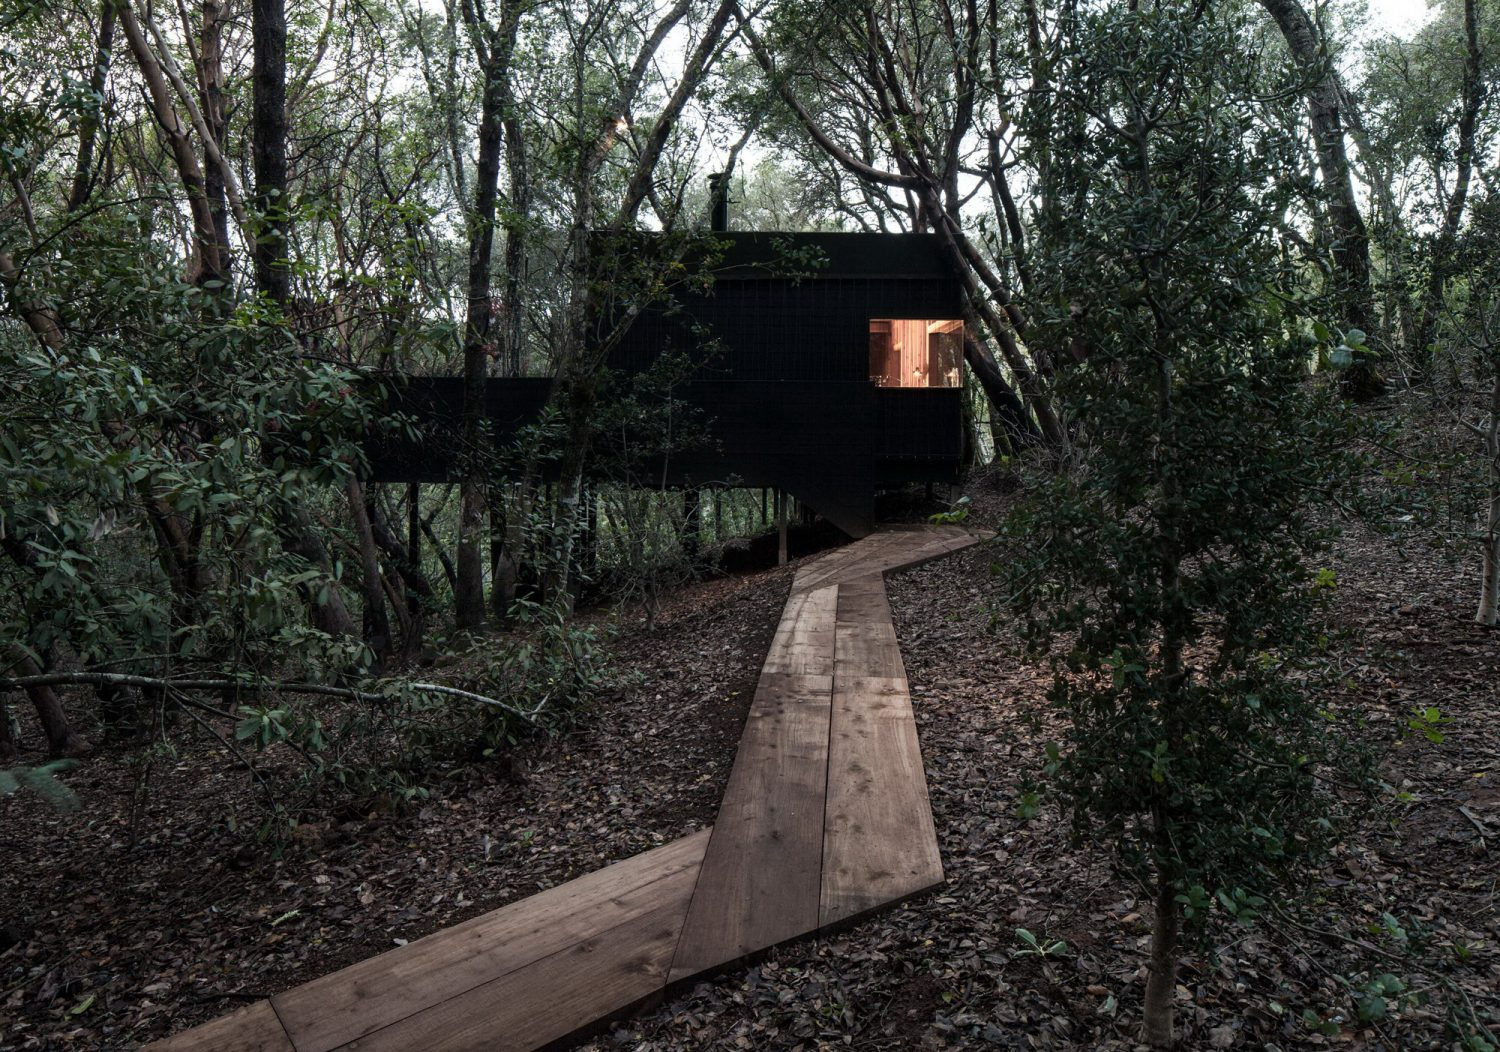 Forest House | Complex of Nine One-Room Cabins by Envelope A+D